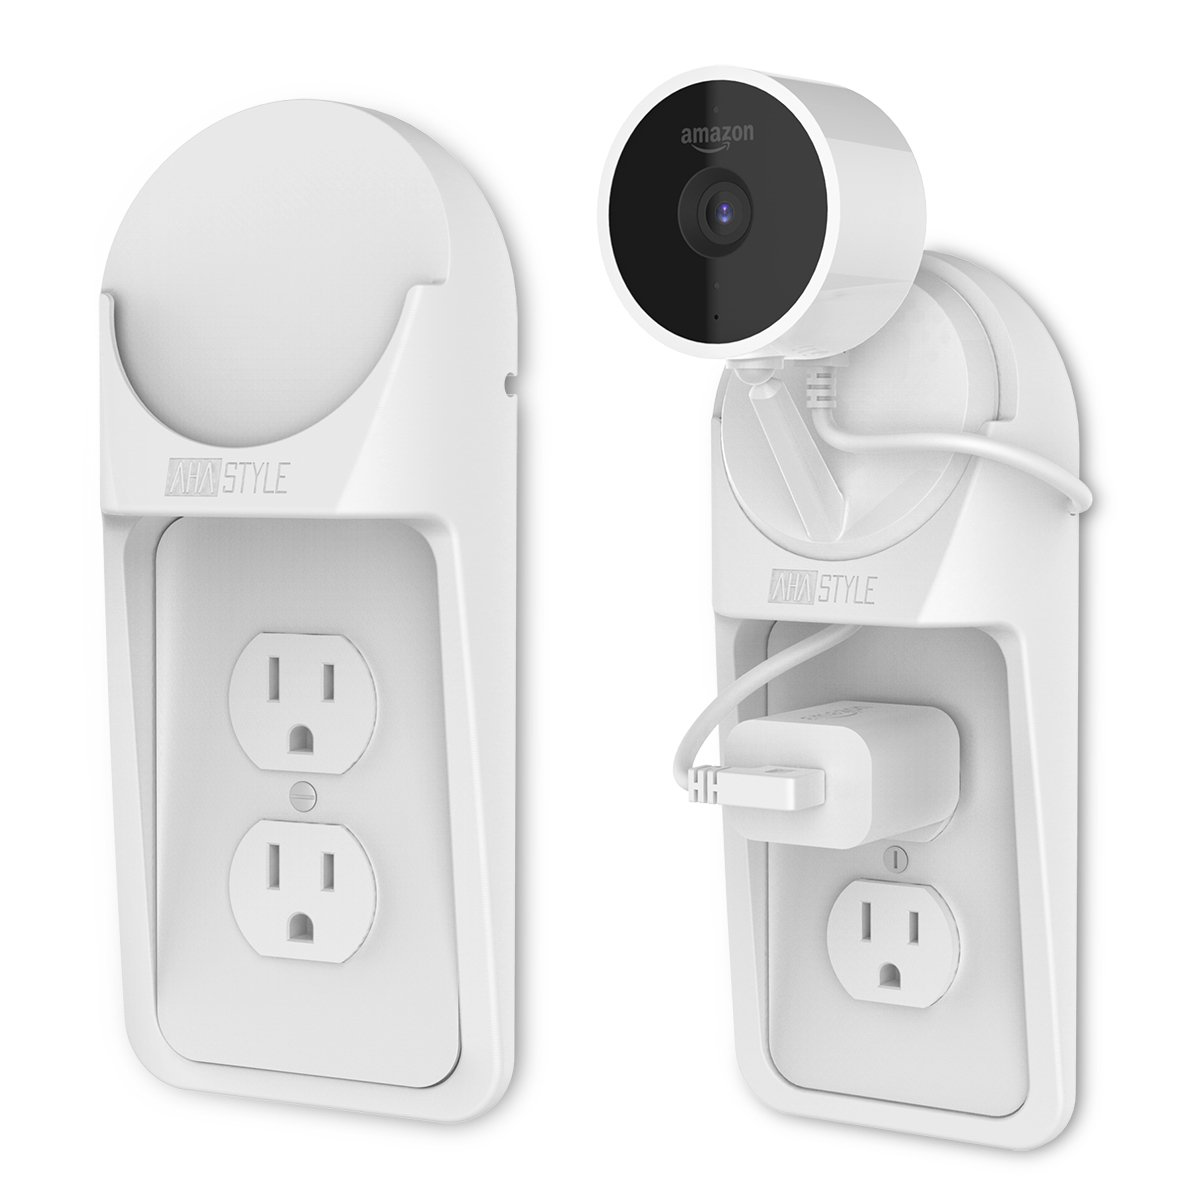 AhaStyle AC Outlet Shelf Wall Mount for Amazon Cloud Cam [White] - [Space Saving Solution with Built-In Cable Channel] [Easy Install with Hardware Included]